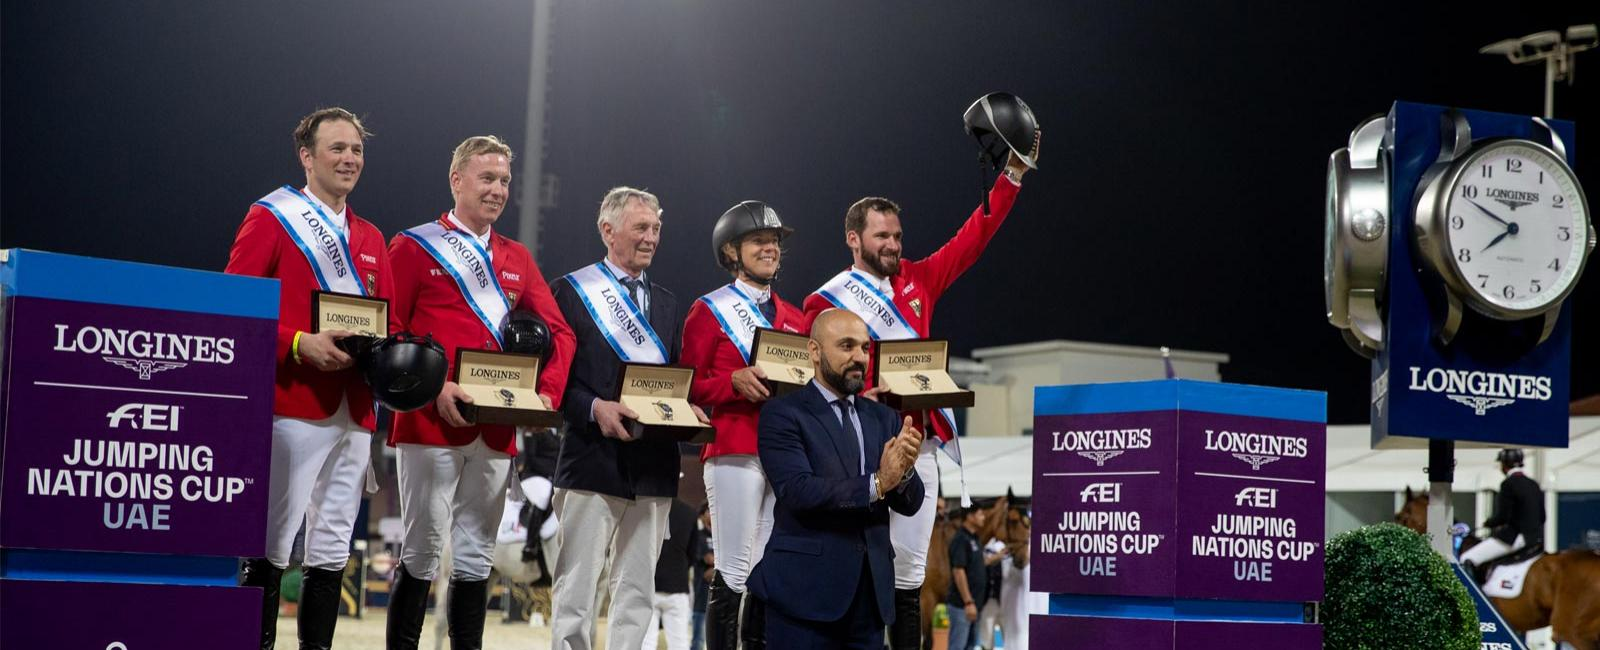 Longines FEI Jumping Nations Cup of UAE 2019; Saut d'obstacles; 2019